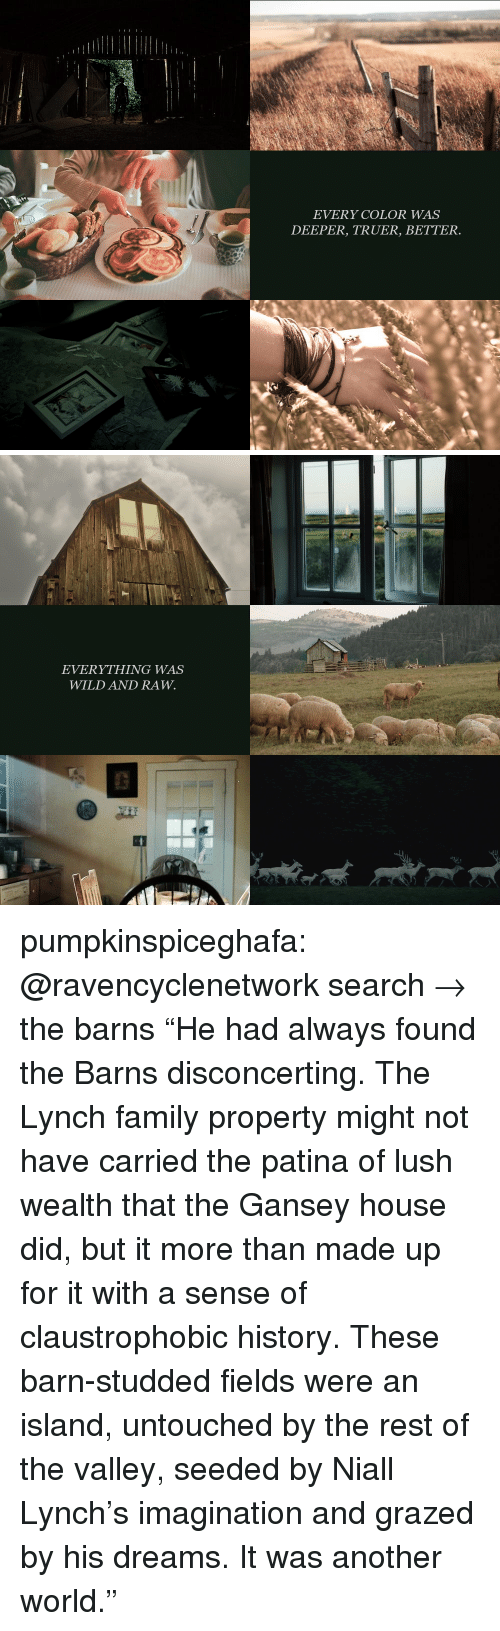 """Family, Target, and Tumblr: EVERY COLOR WAS  DEEPER, TRUER, BETTER.   EVERYTHING WAS  WILD AND RAW. pumpkinspiceghafa: @ravencyclenetwork search→ the barns """"He had always found the Barns disconcerting. The Lynch family property might not have carried the patina of lush wealth that the Gansey house did, but it more than made up for it with a sense of claustrophobic history. These barn-studded fields were an island, untouched by the rest of the valley, seeded by Niall Lynch's imagination and grazed by his dreams. It was another world."""""""